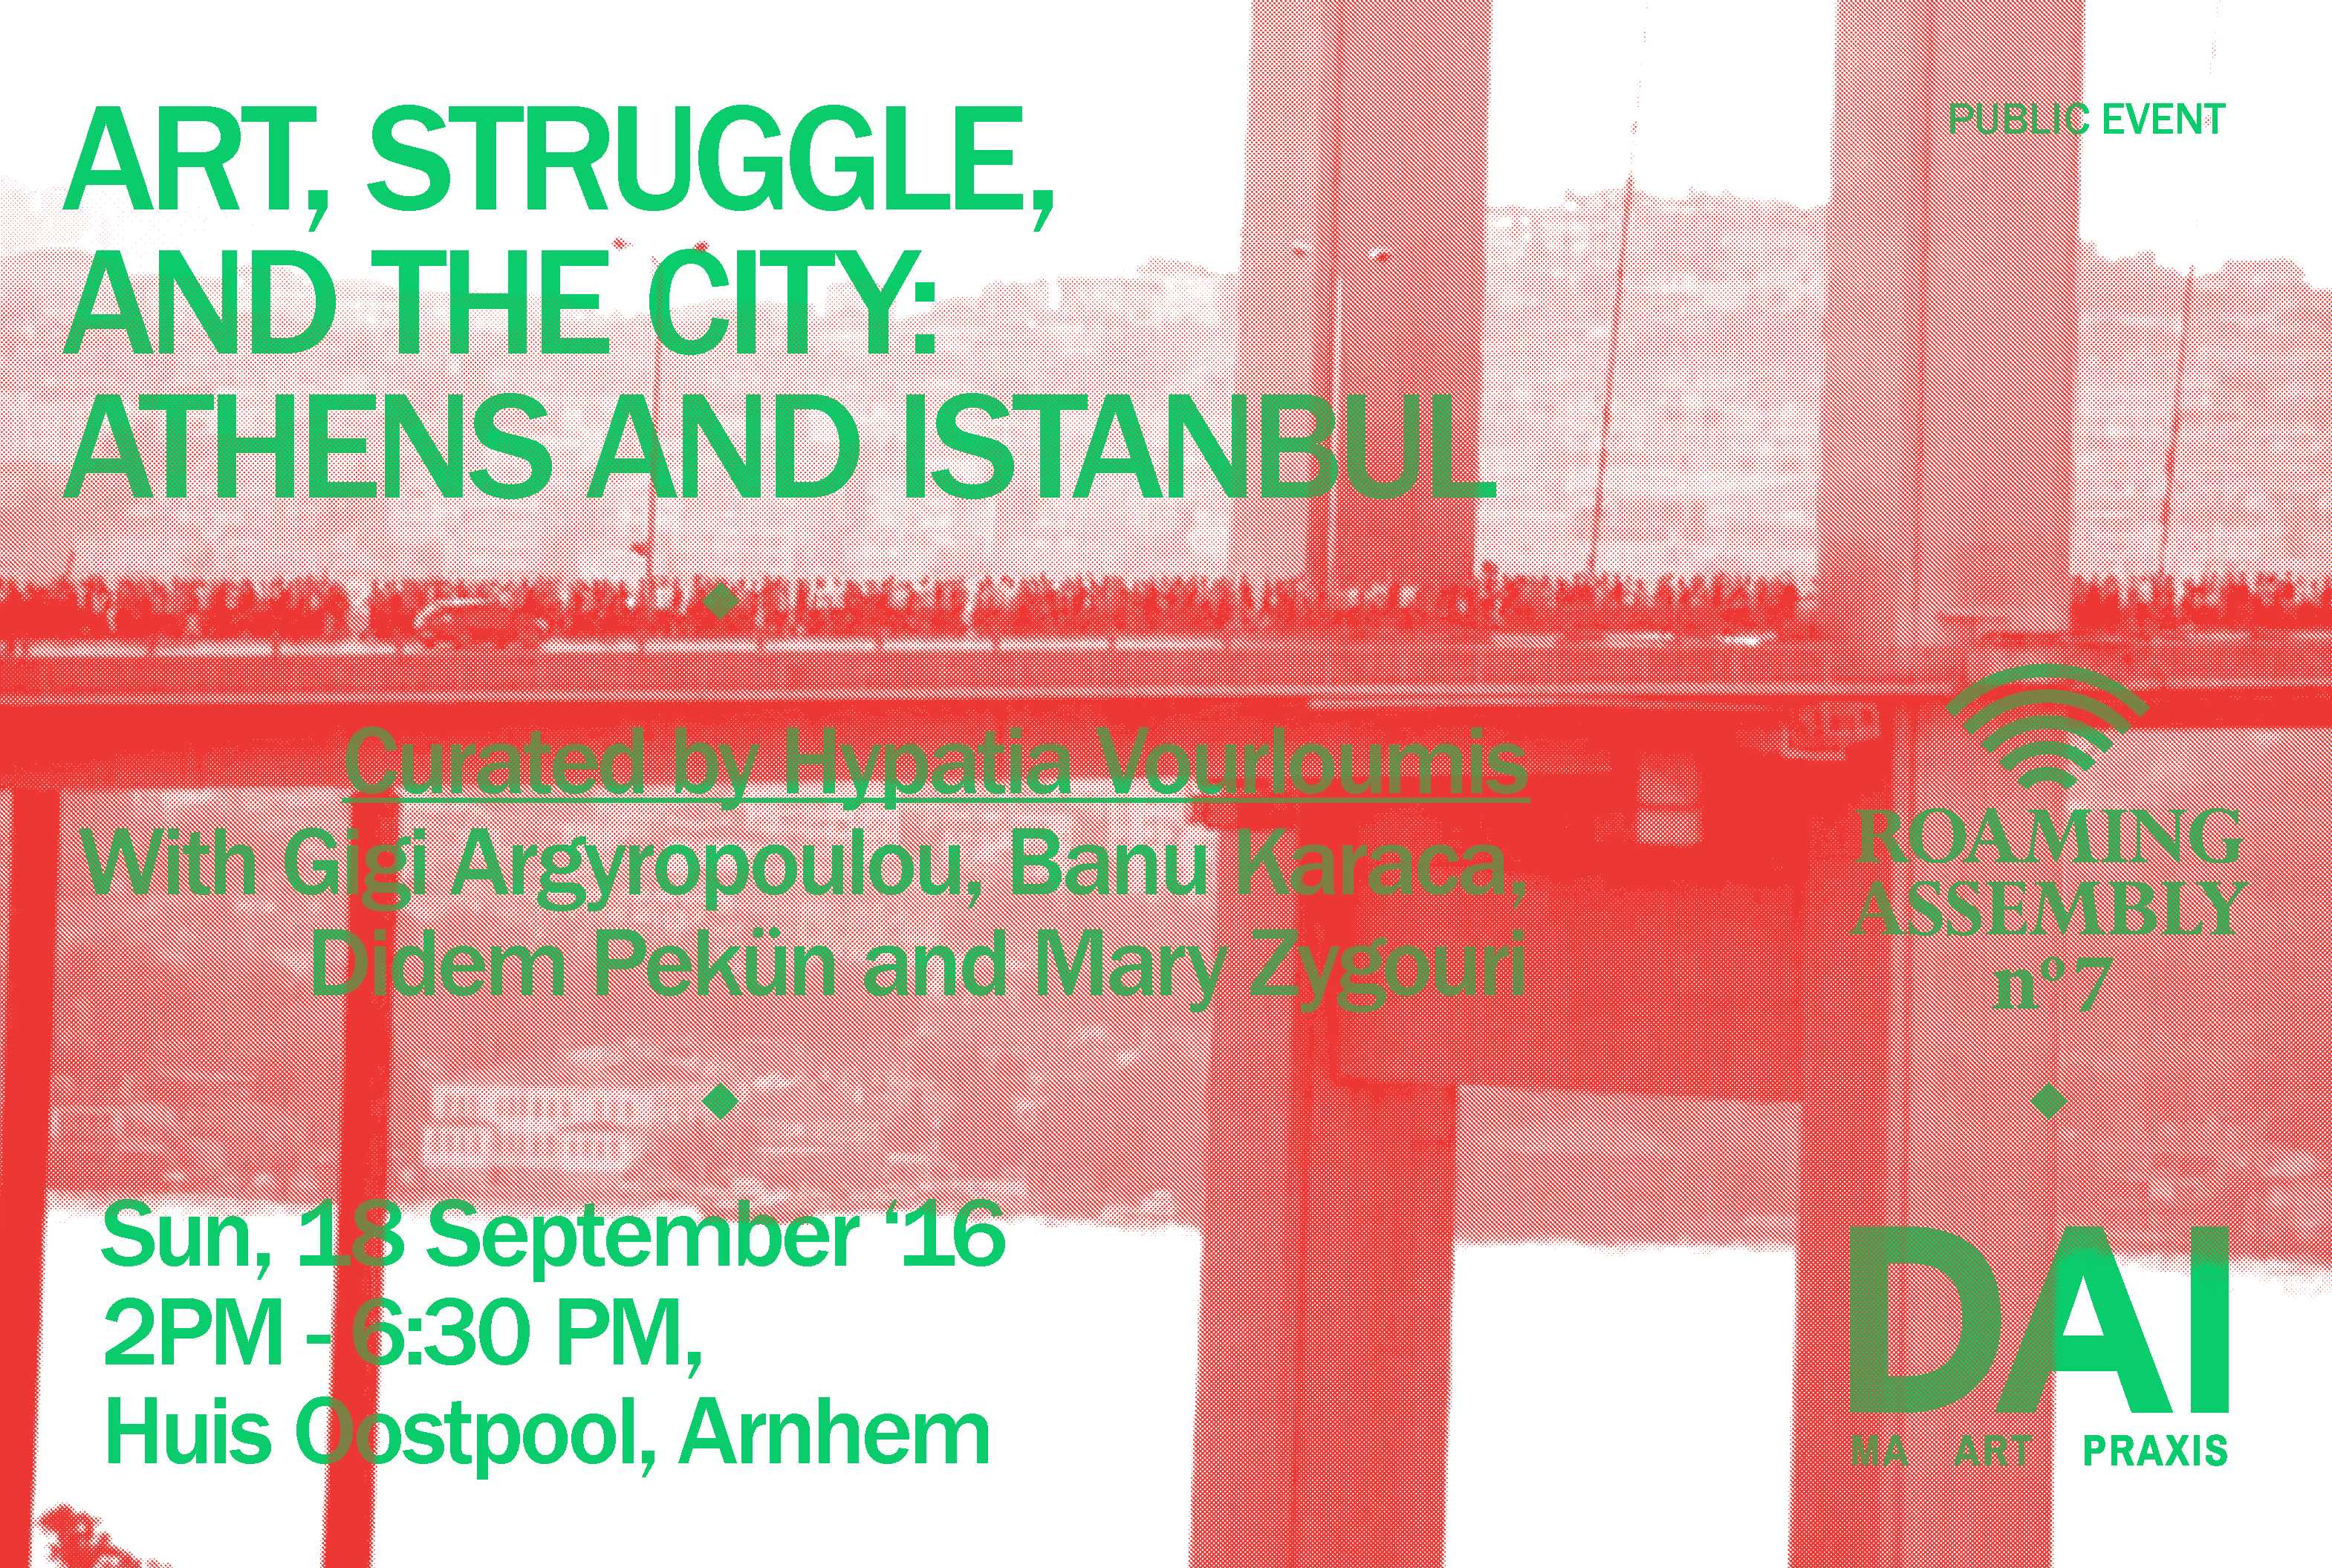 DAI, september 18 ~ Art, Struggle, and the City: Athens and Istanbul